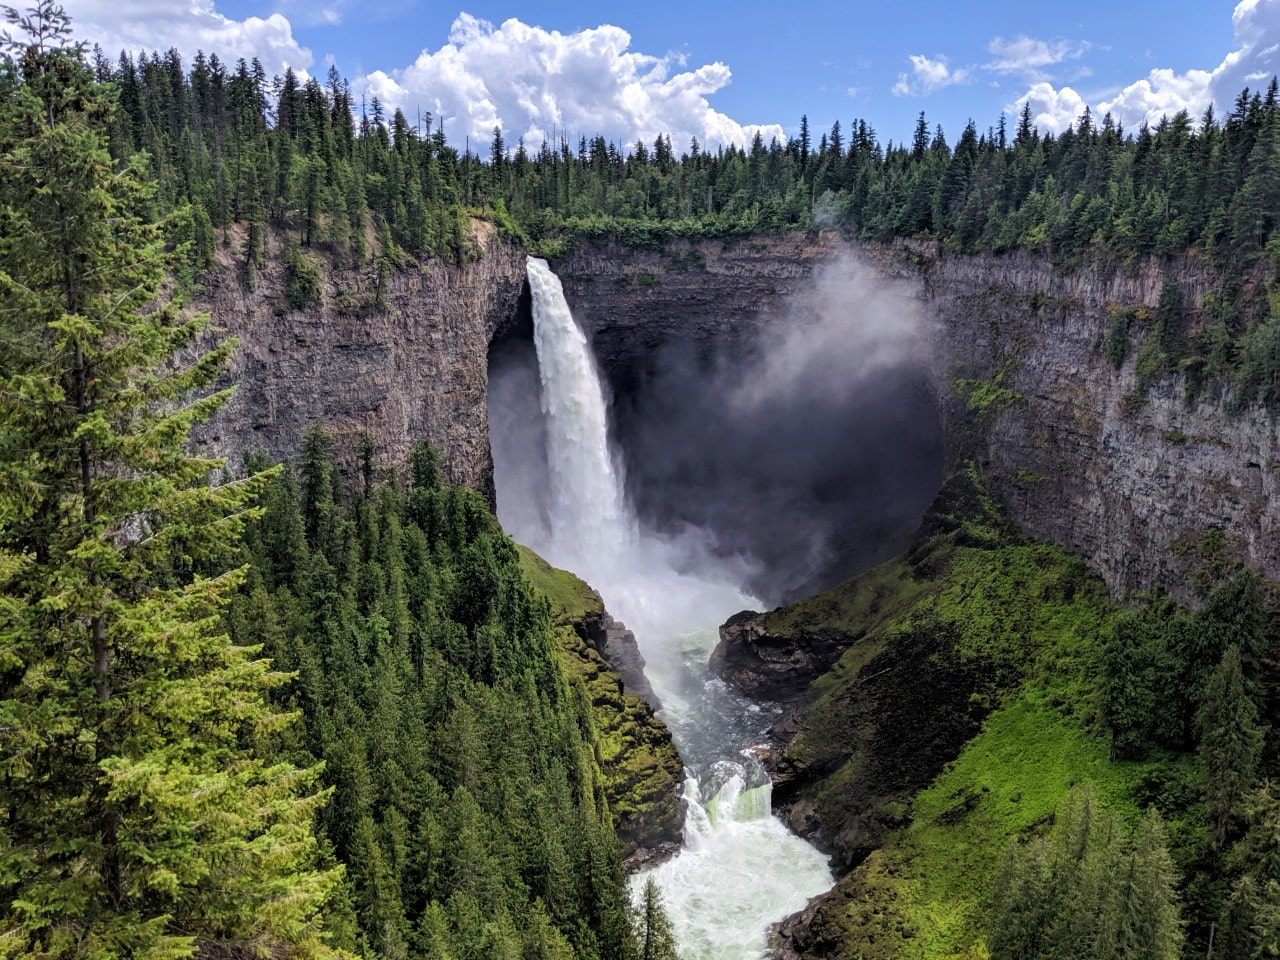 141m Helmckcen Falls plunging into a canyon in Wells Gray Provincial Park